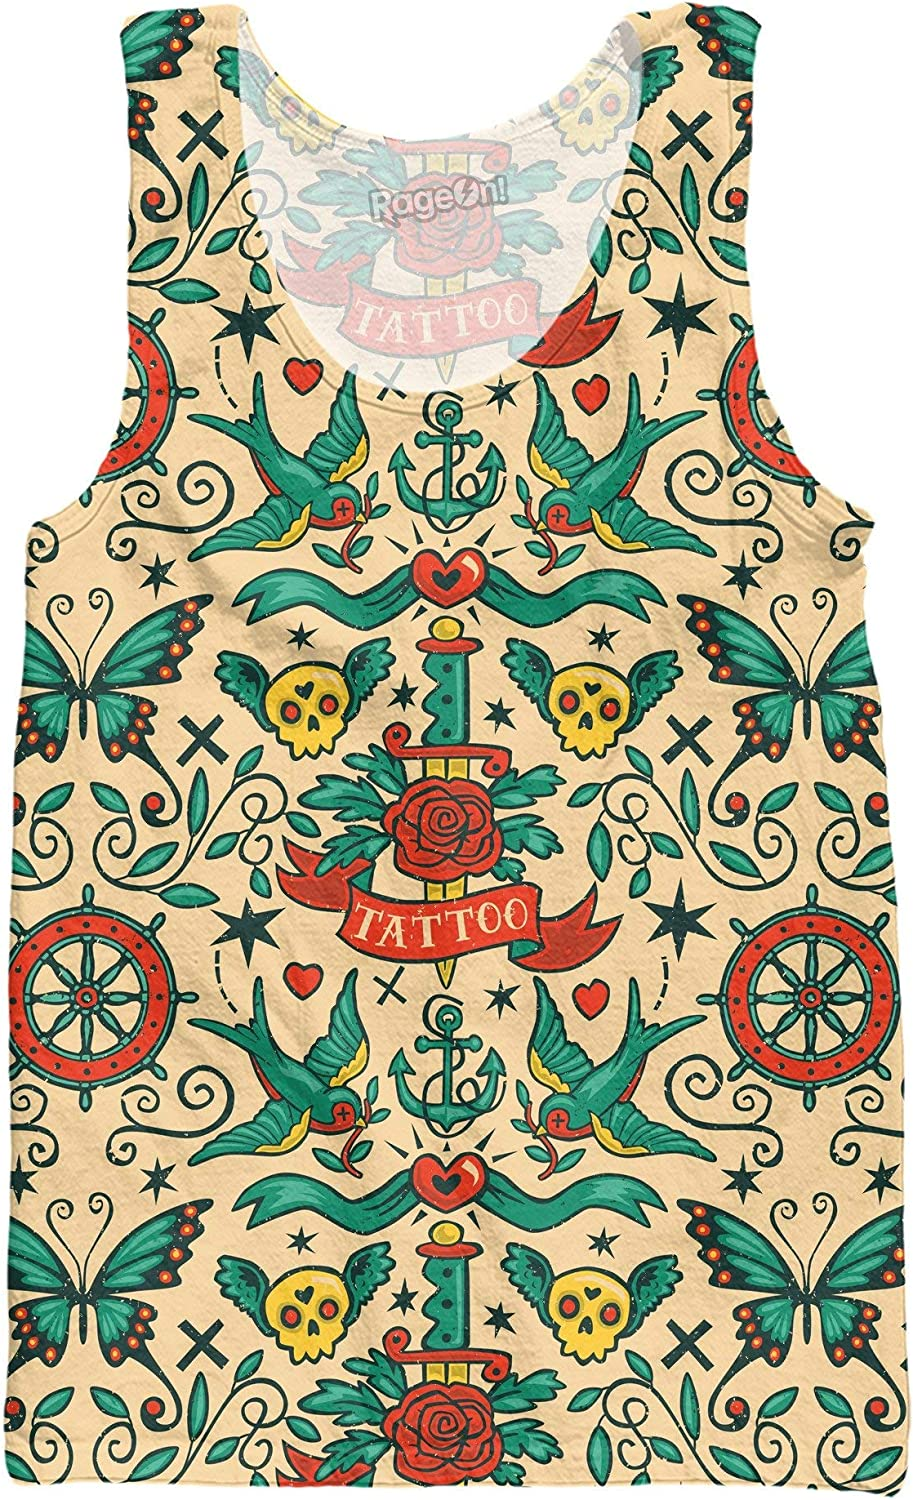 RageOn Steve Simpson Tattoo Premium All Over Print Tank Top